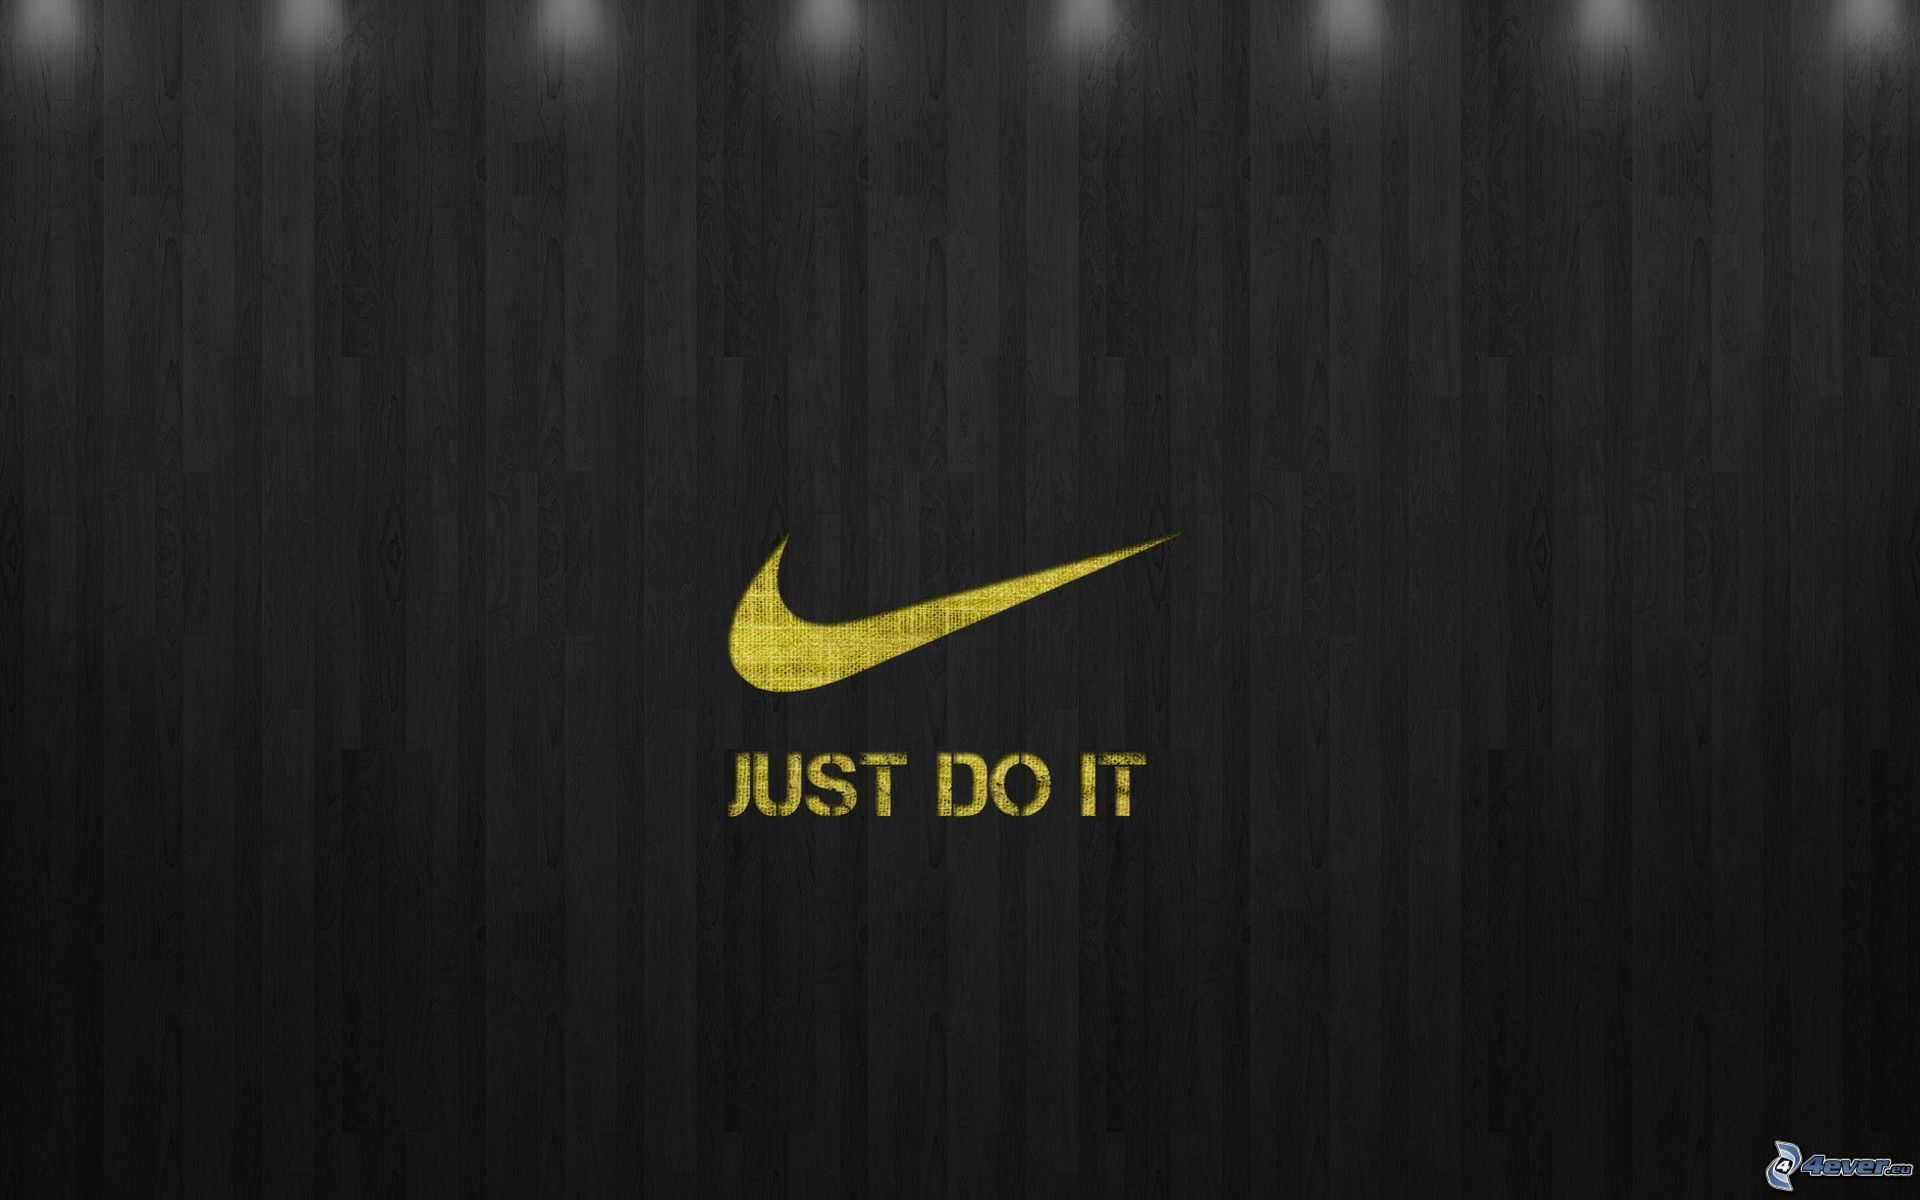 Just do it download picture voltagebd Image collections